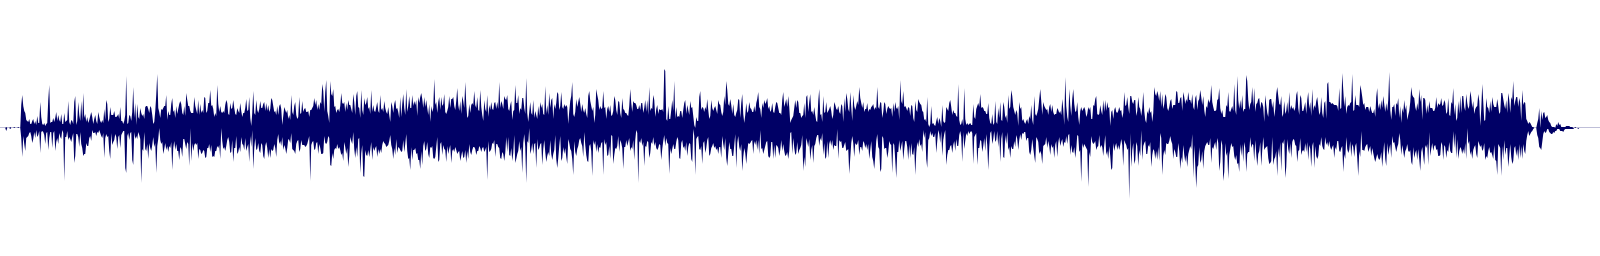 waveform of track #110580